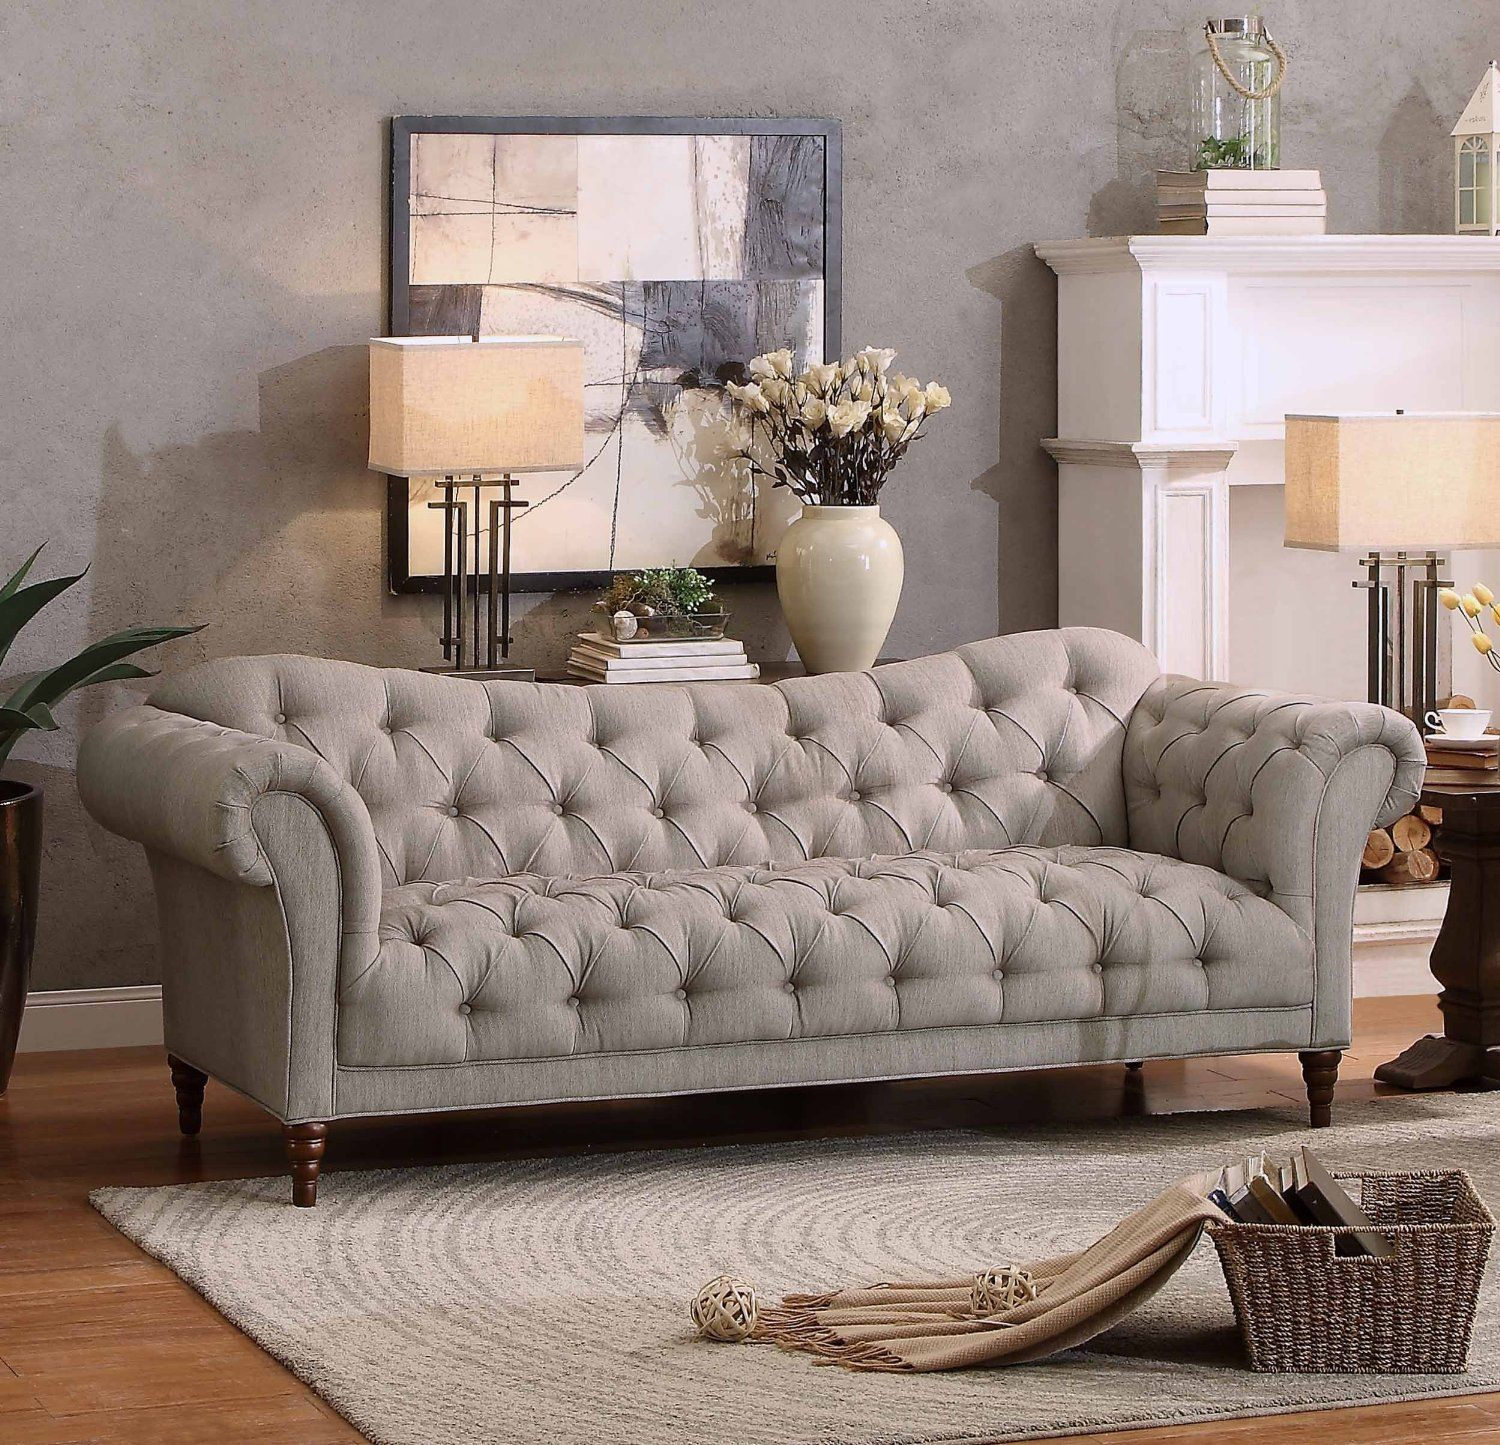 25 Chesterfield Sofas That Are Sure To Really Tie Your Room Together